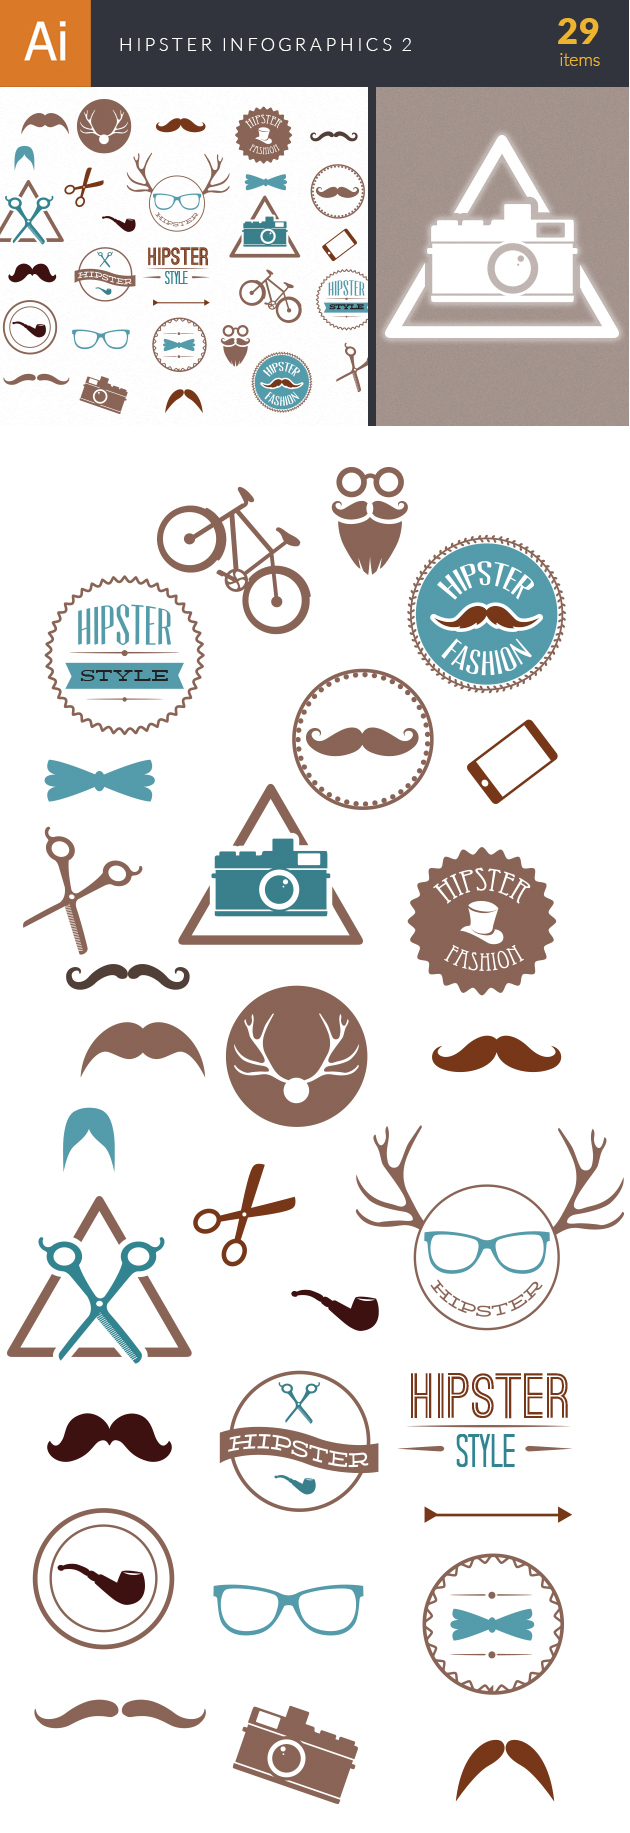 Hipster Infographics Vector Set 2 2